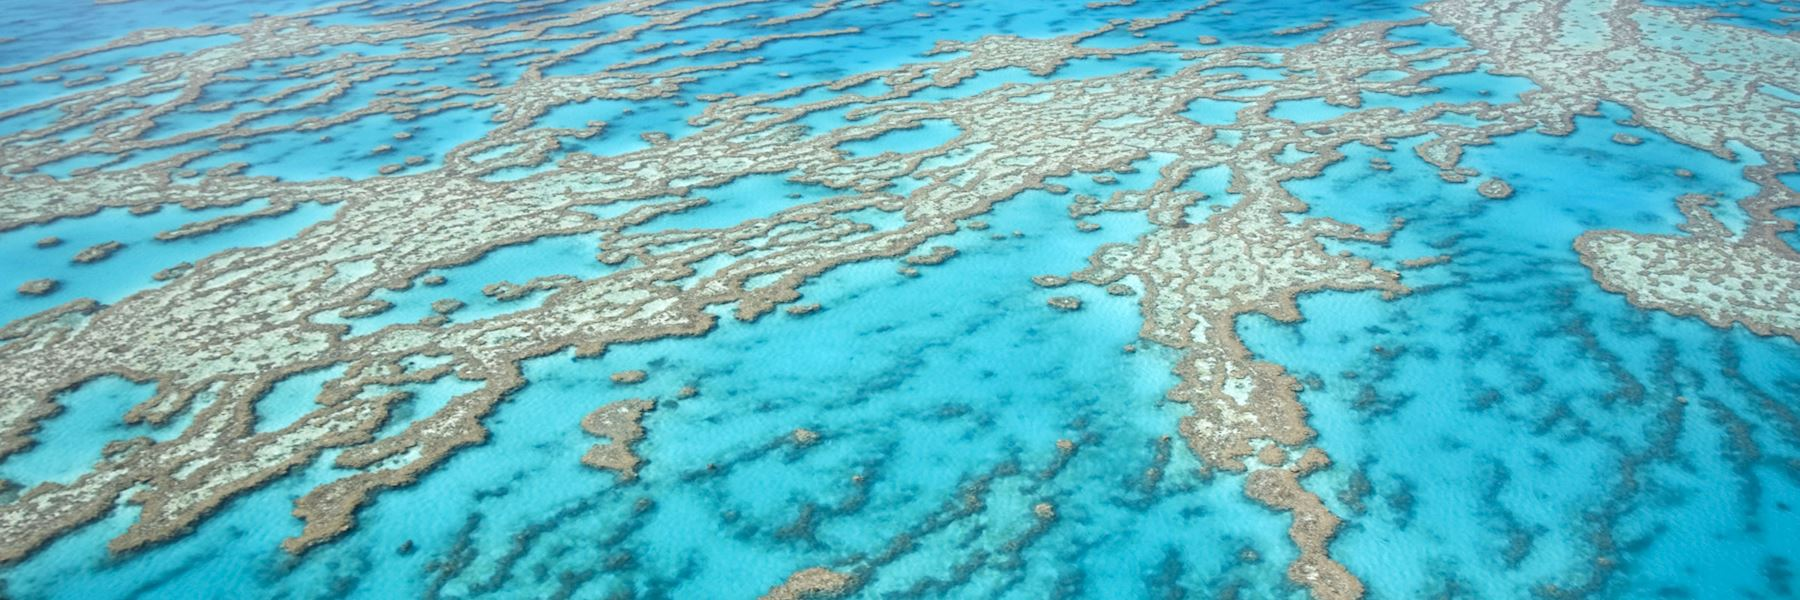 Visit the Great Barrier Reef, Australia